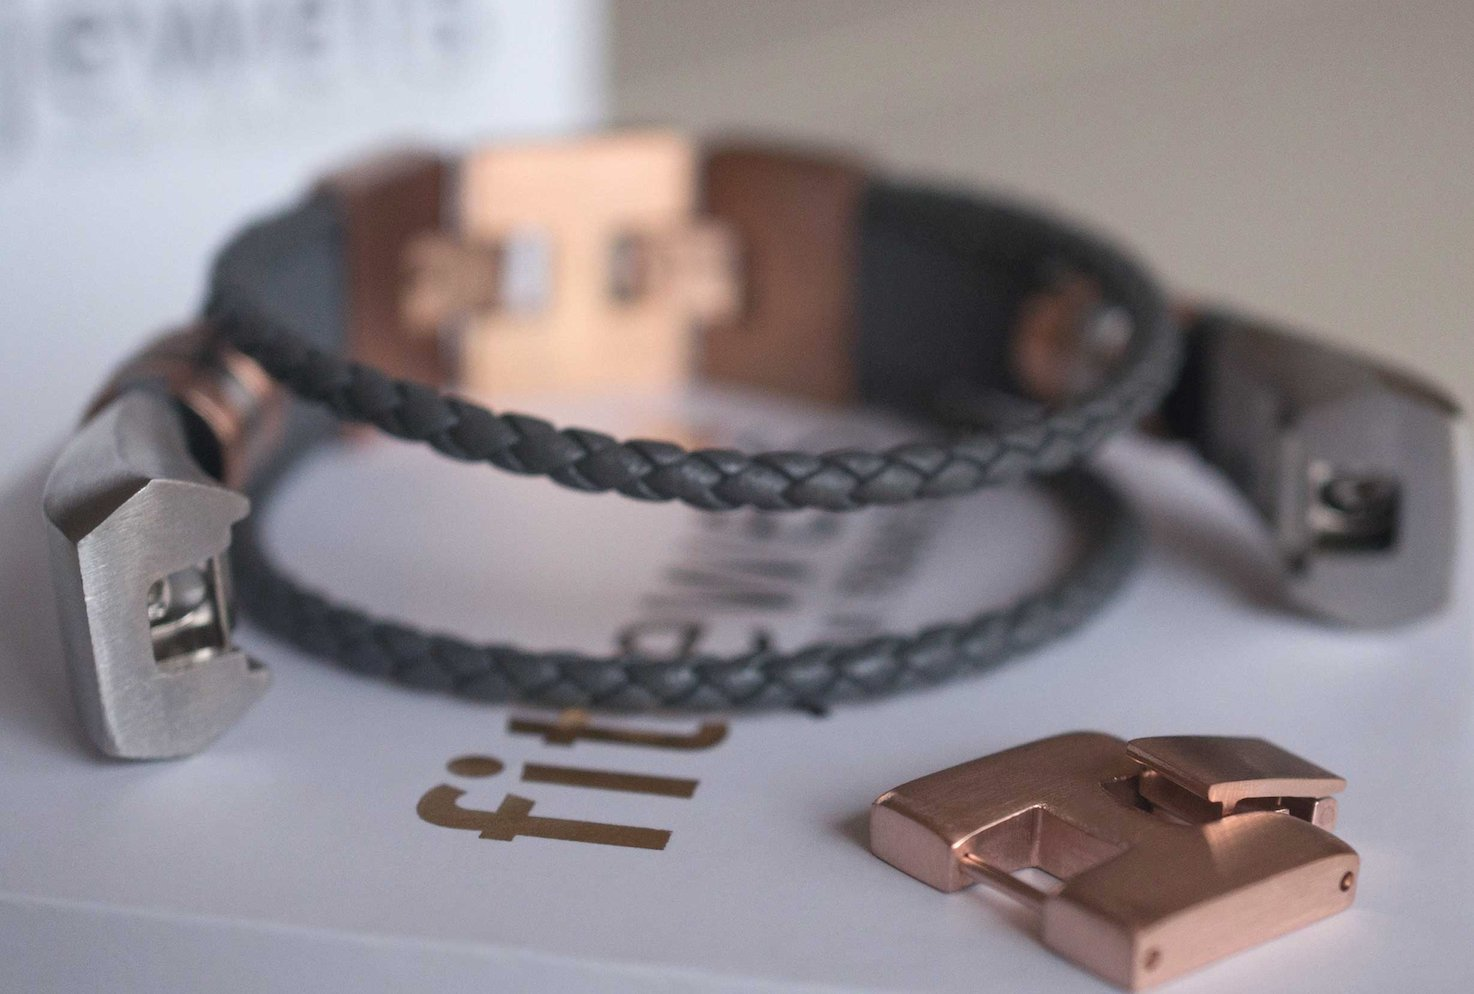 fitjewels Alta HR Bands - Aurel Leather Replacement Band, Available in Black, Brown, Gold, Silver and Grey (Grey-Rose Gold, M-XL (6.5-9 inch)) by fitjewels